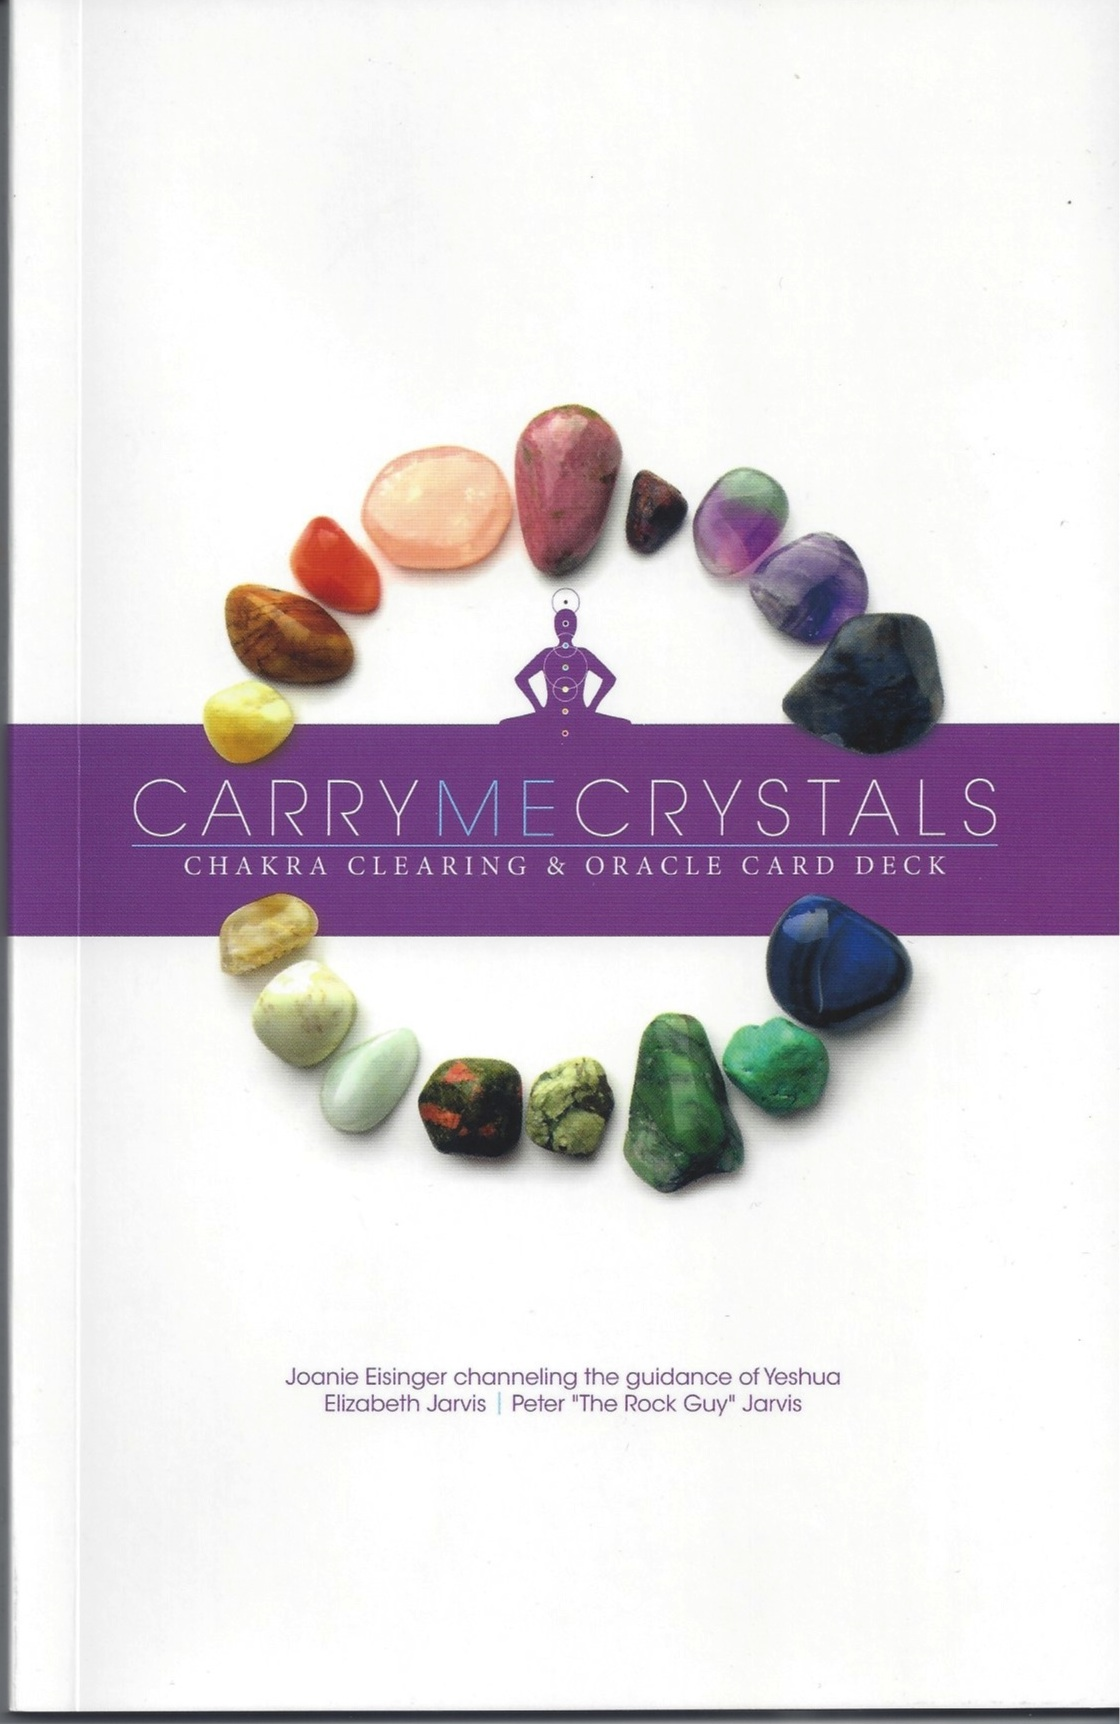 Carry me Crystals box with gemstone oracle cards